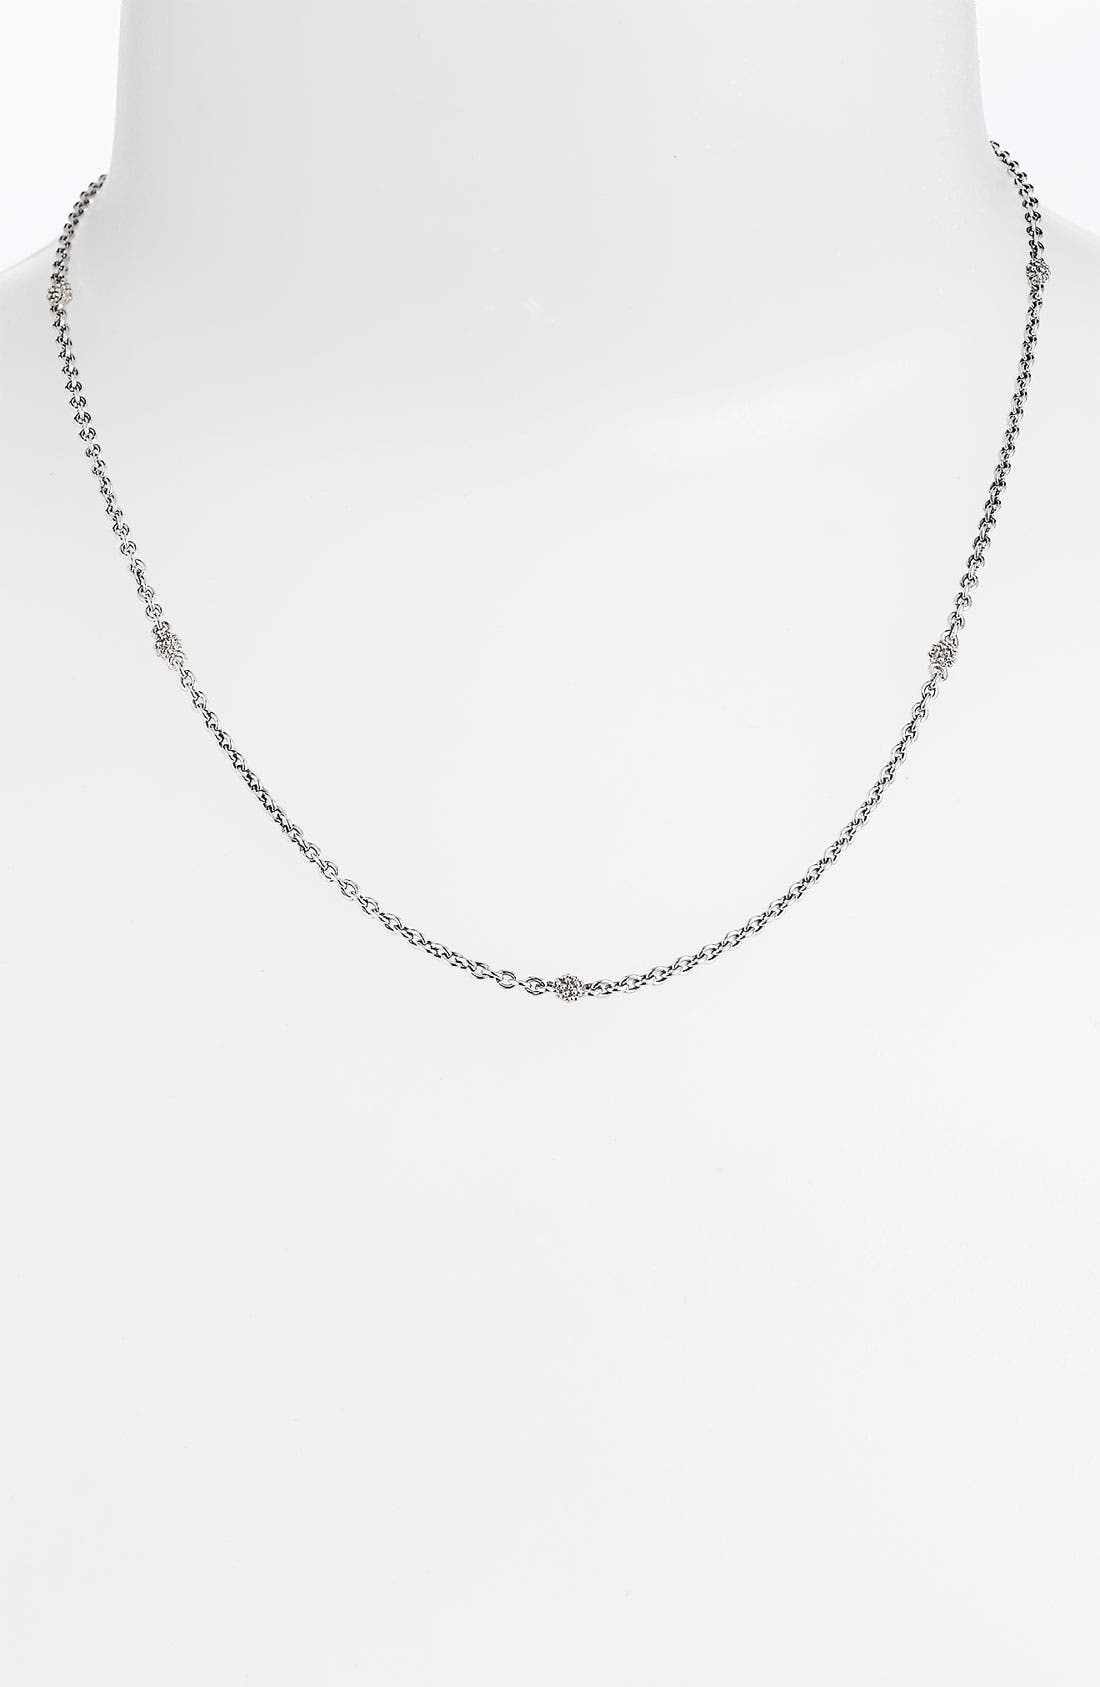 Main Image - LAGOS Caviar Station Chain Necklace